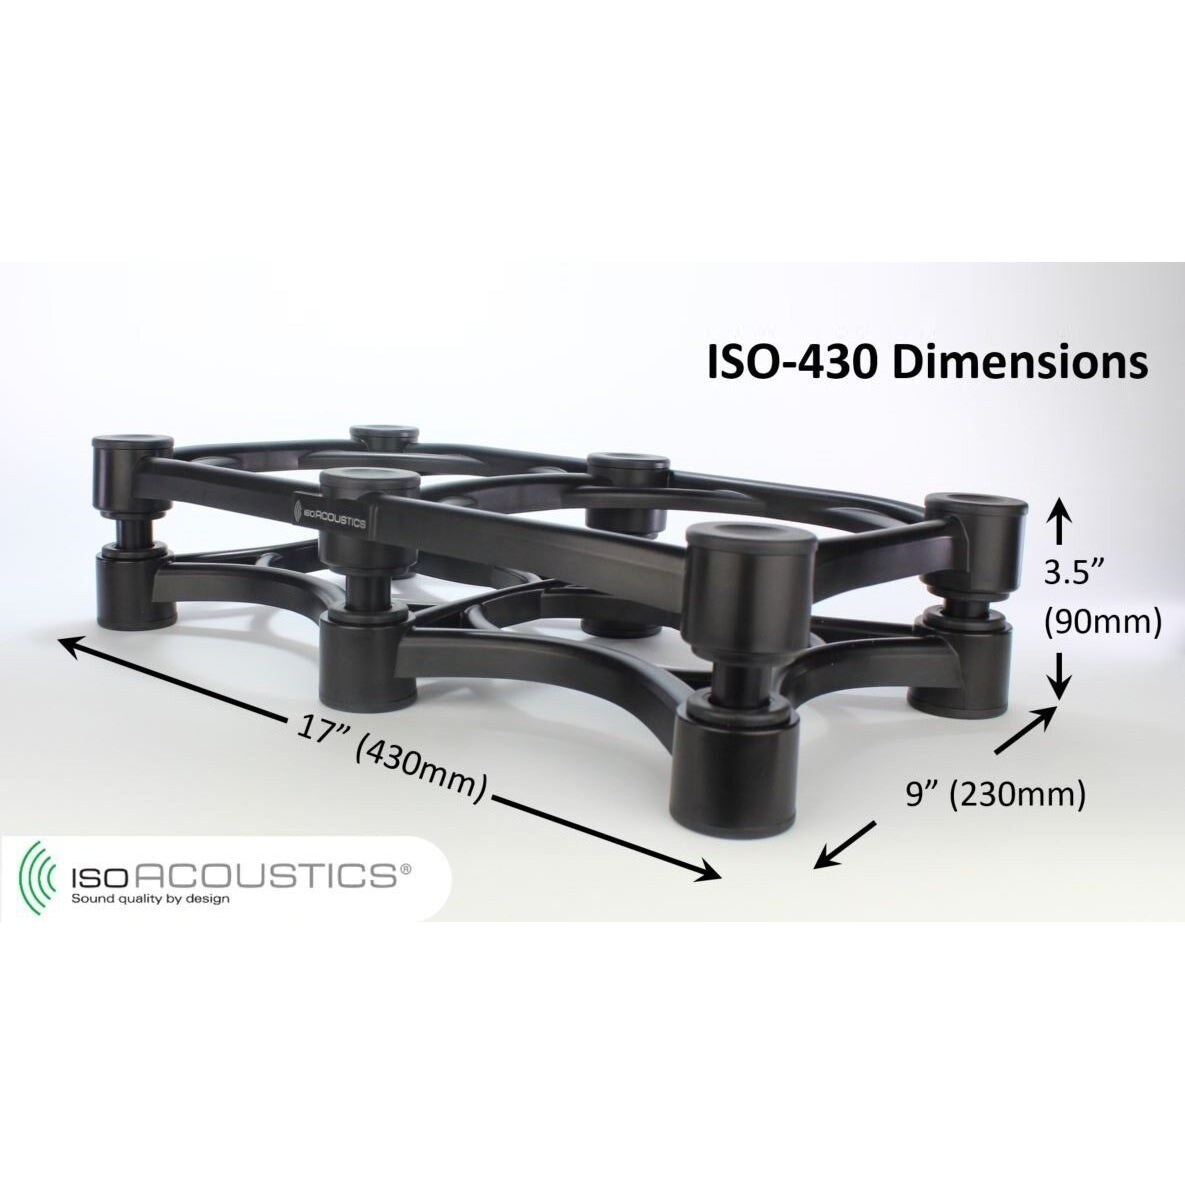 IsoAcoustics ISO-430 Isolation Stand for Guitar Amplifiers